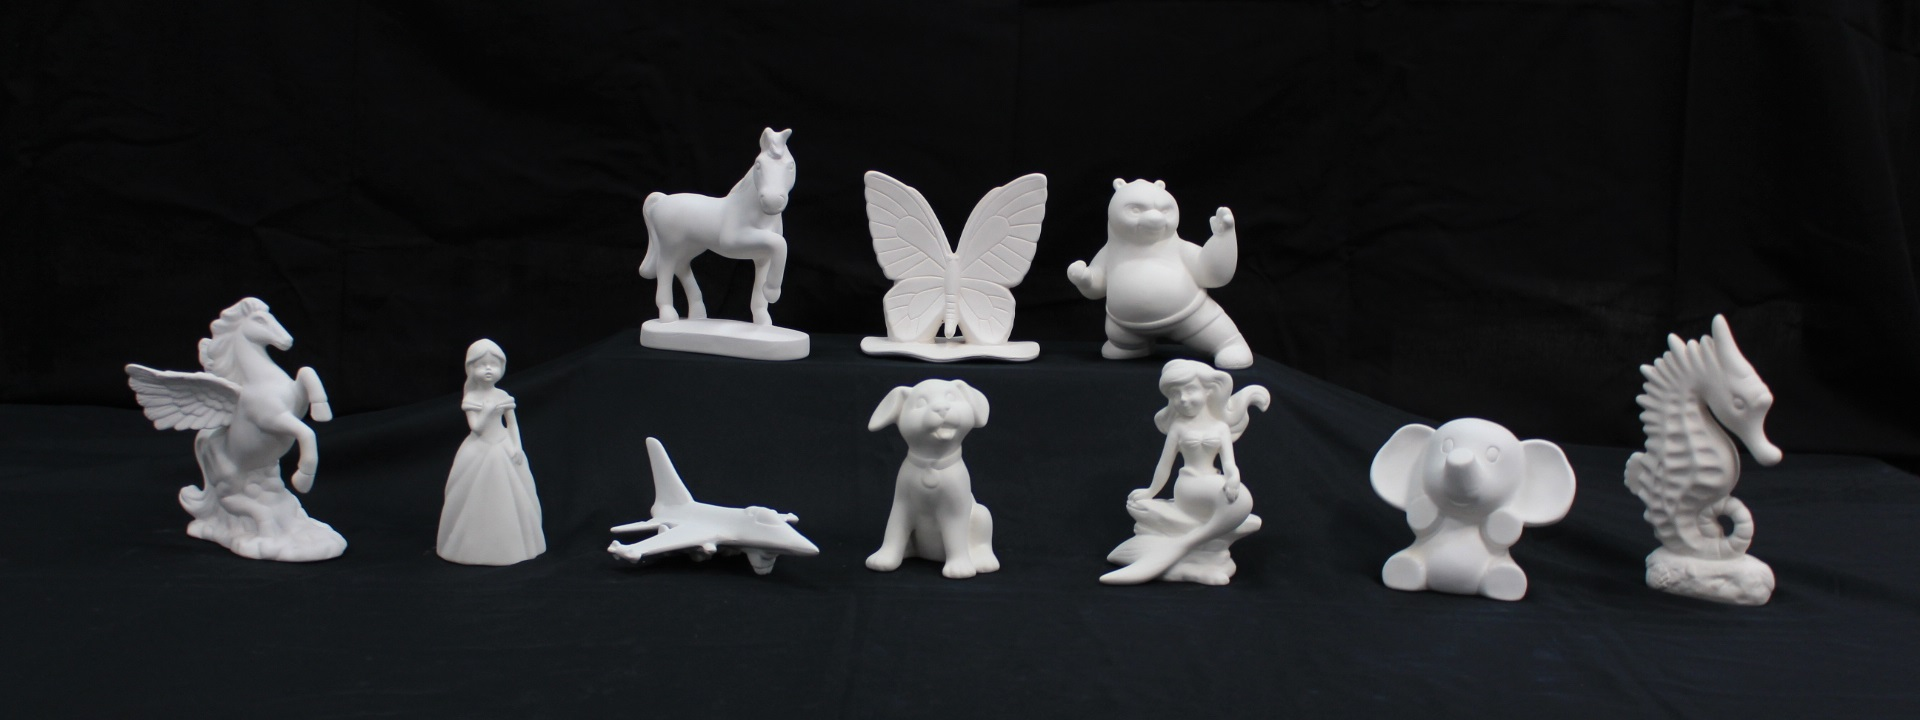 Bisqueware figurines